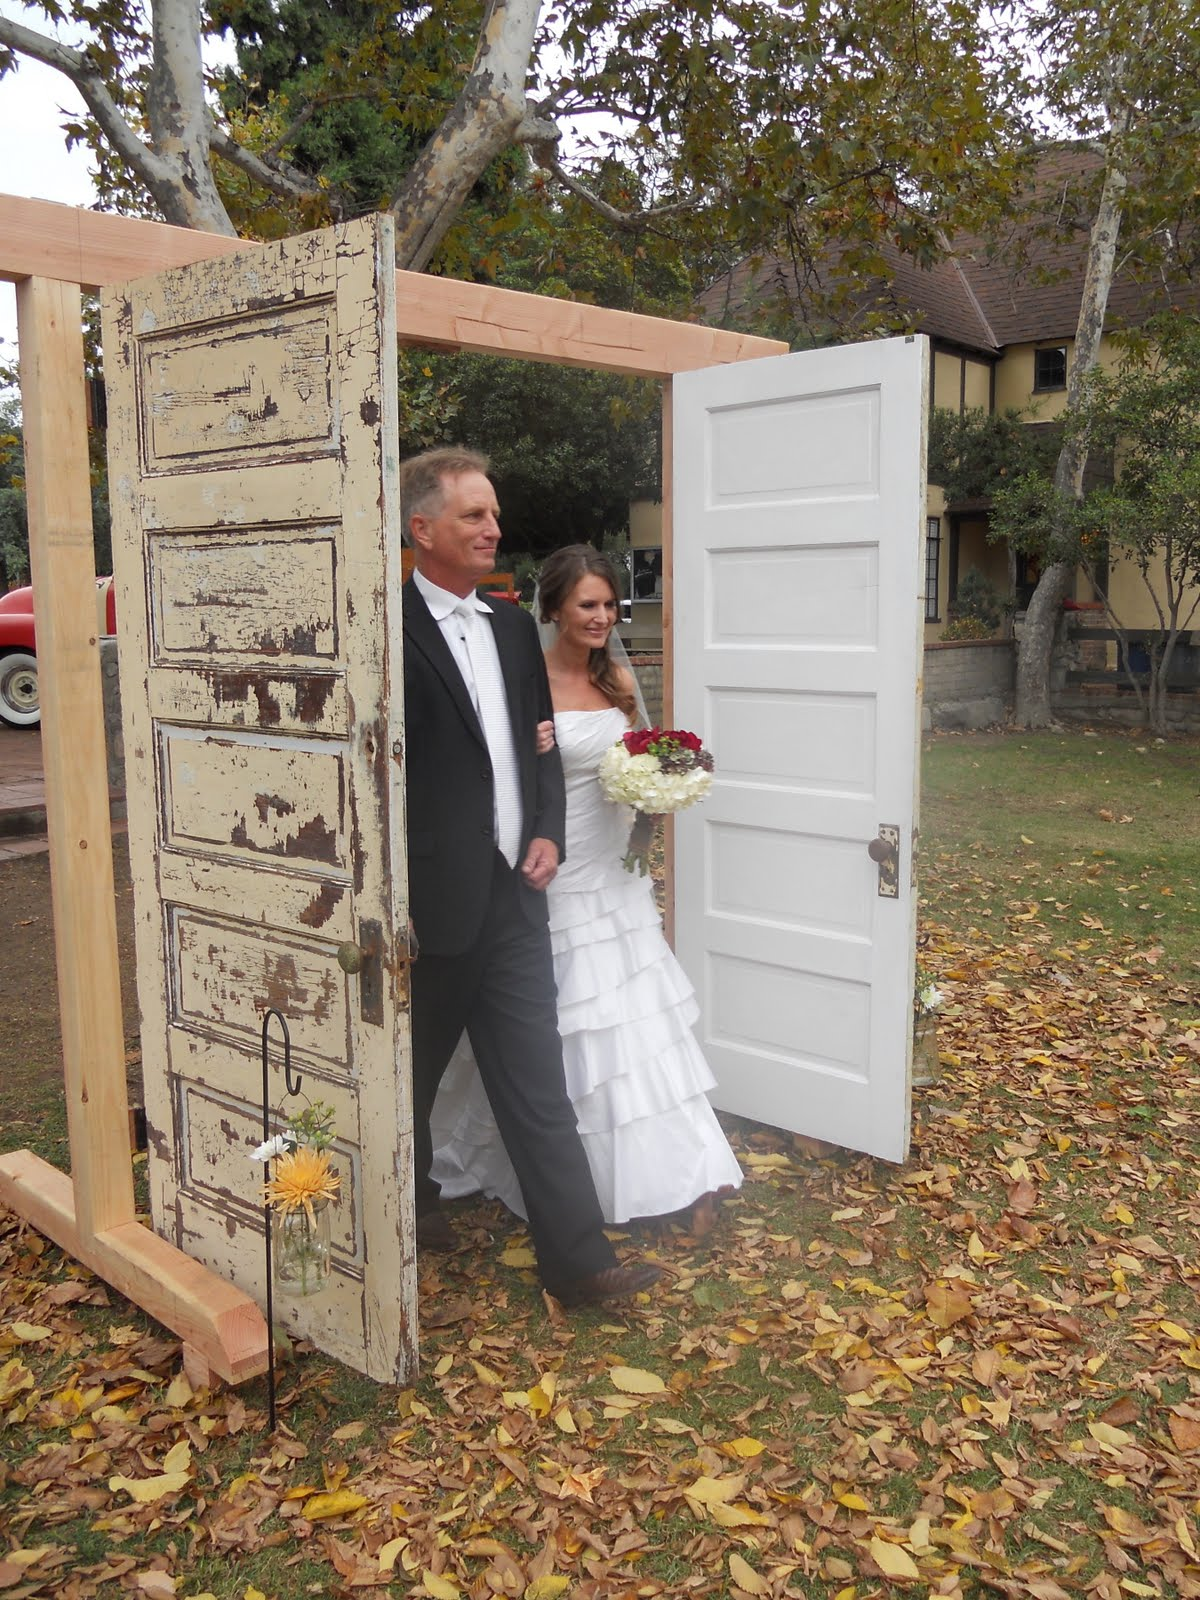 One Sweet Home Spun Touch Is The 2nd Cousins Entering In A Rustic Wagon Just Ahead Of Bride